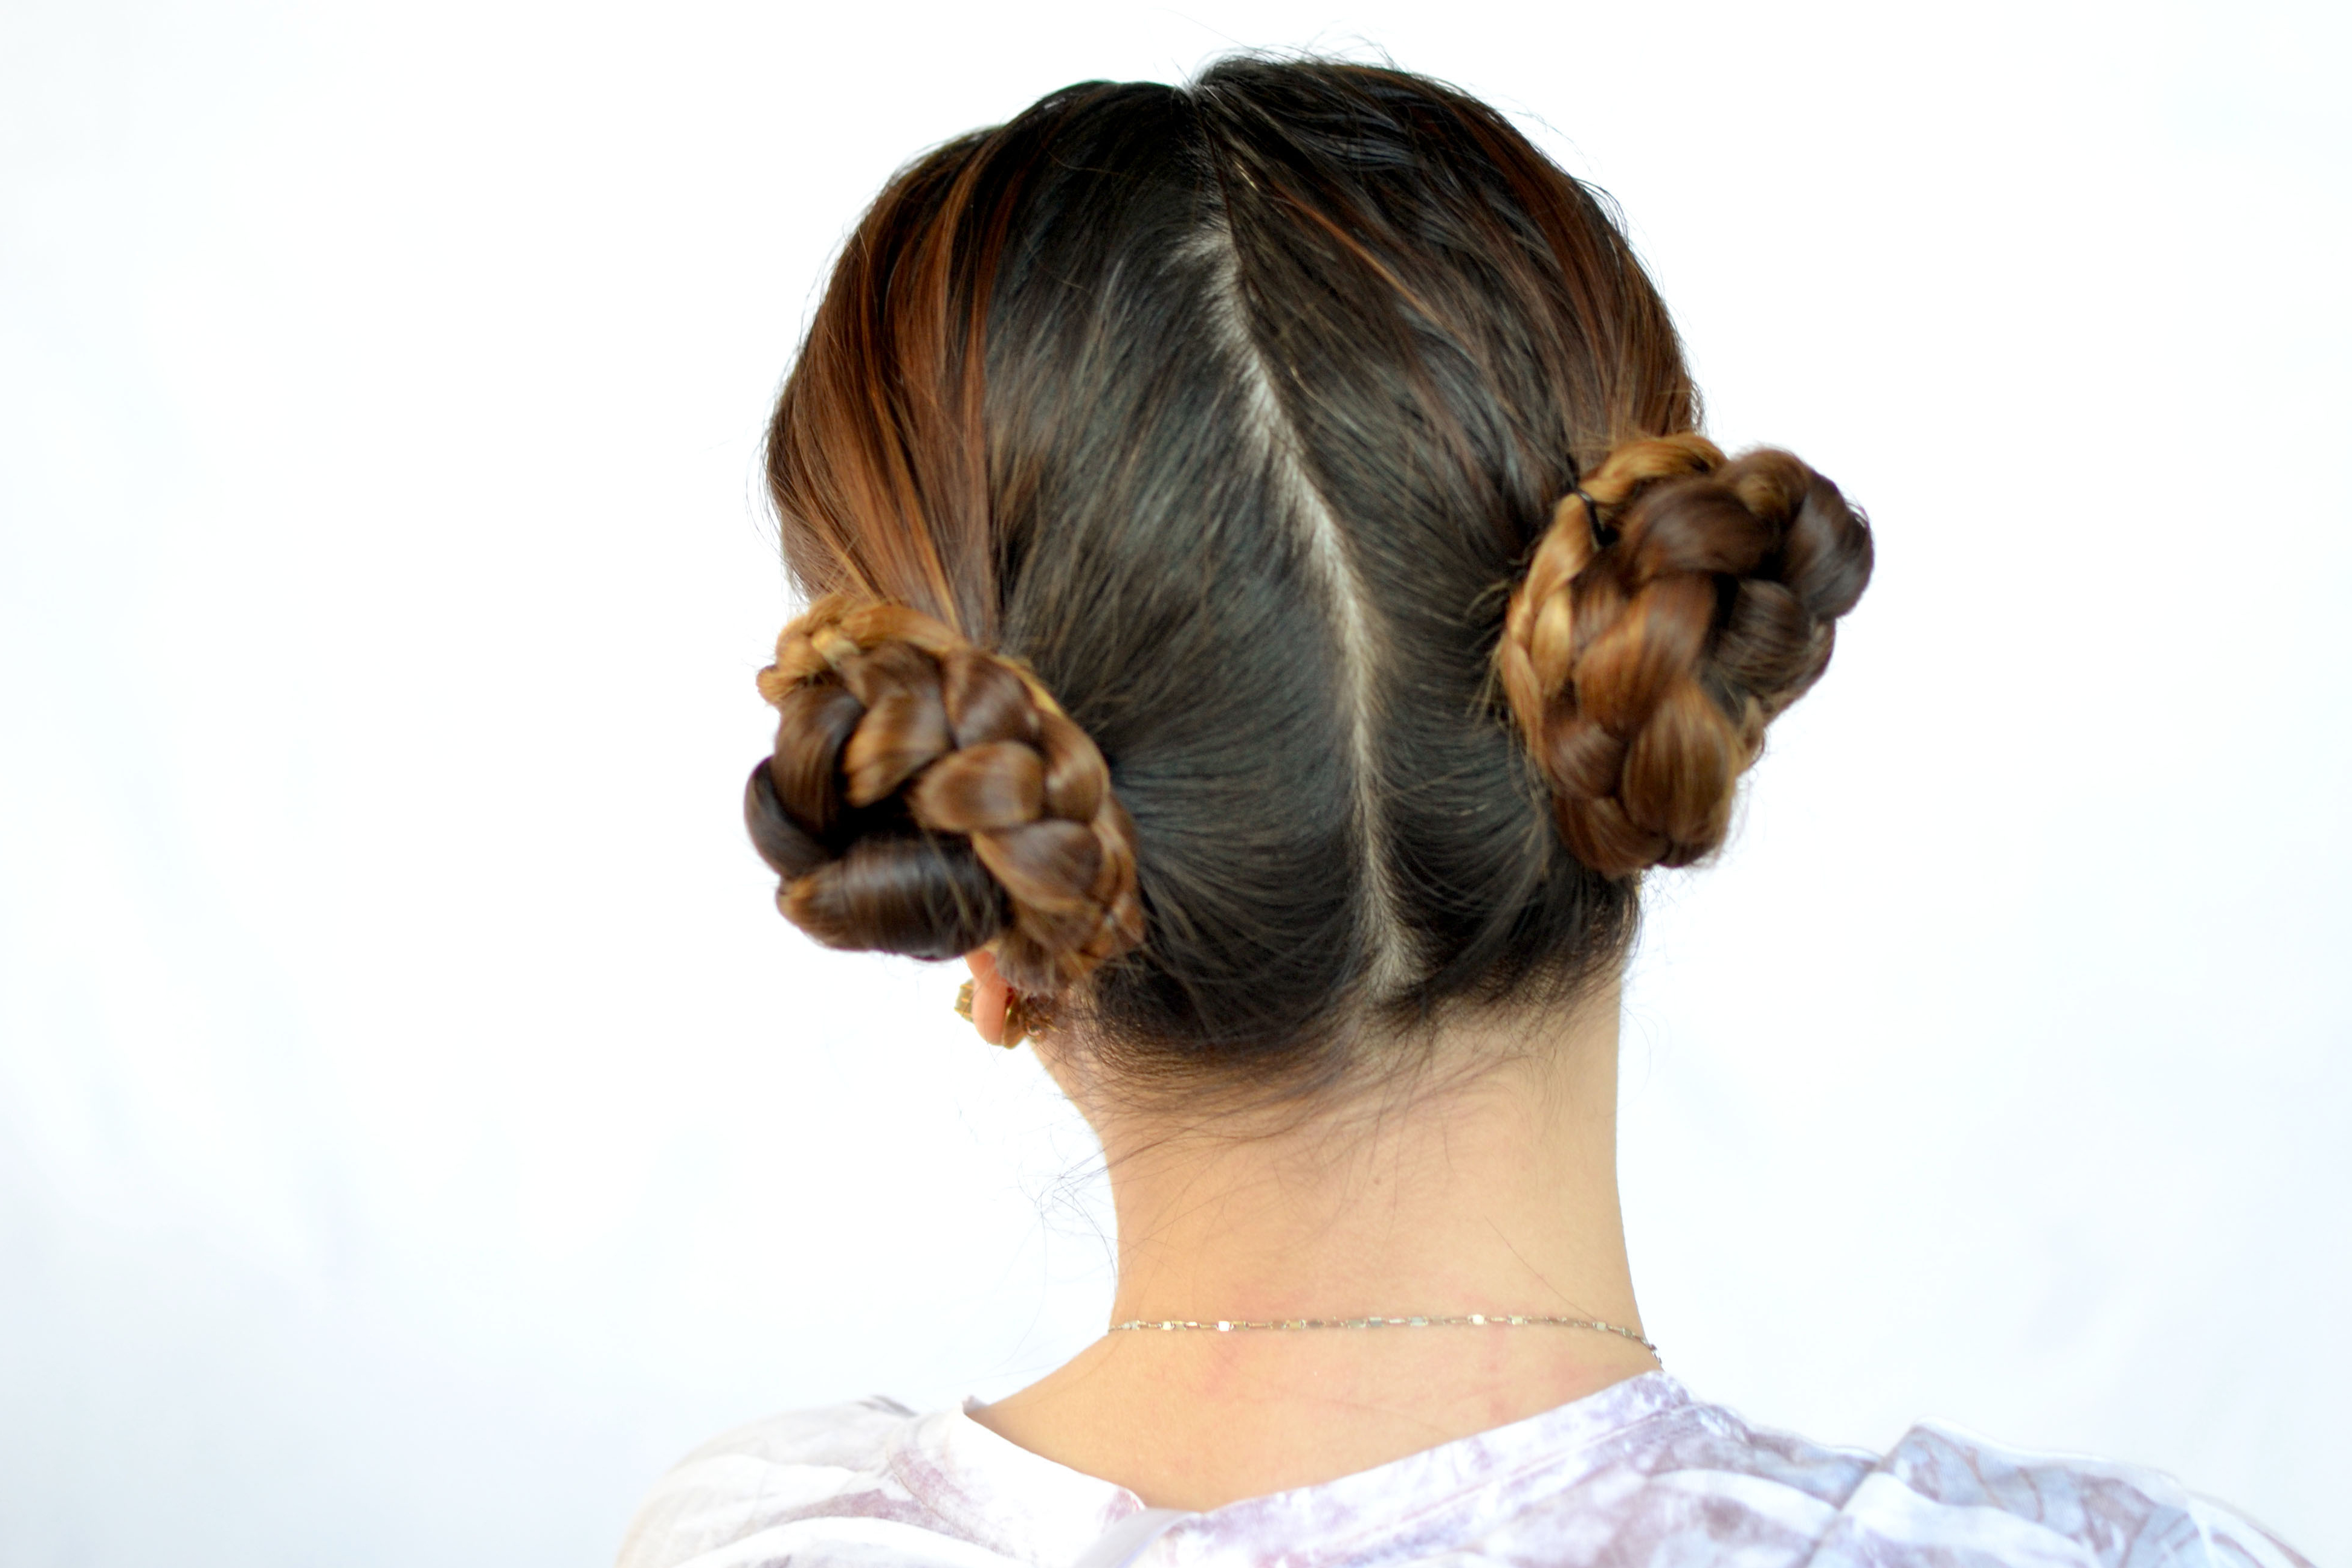 3 Ways To Create A Braided Cinnamon Bun Hairstyle – Wikihow Inside Well Known Braids And Buns Hairstyles (Gallery 10 of 20)